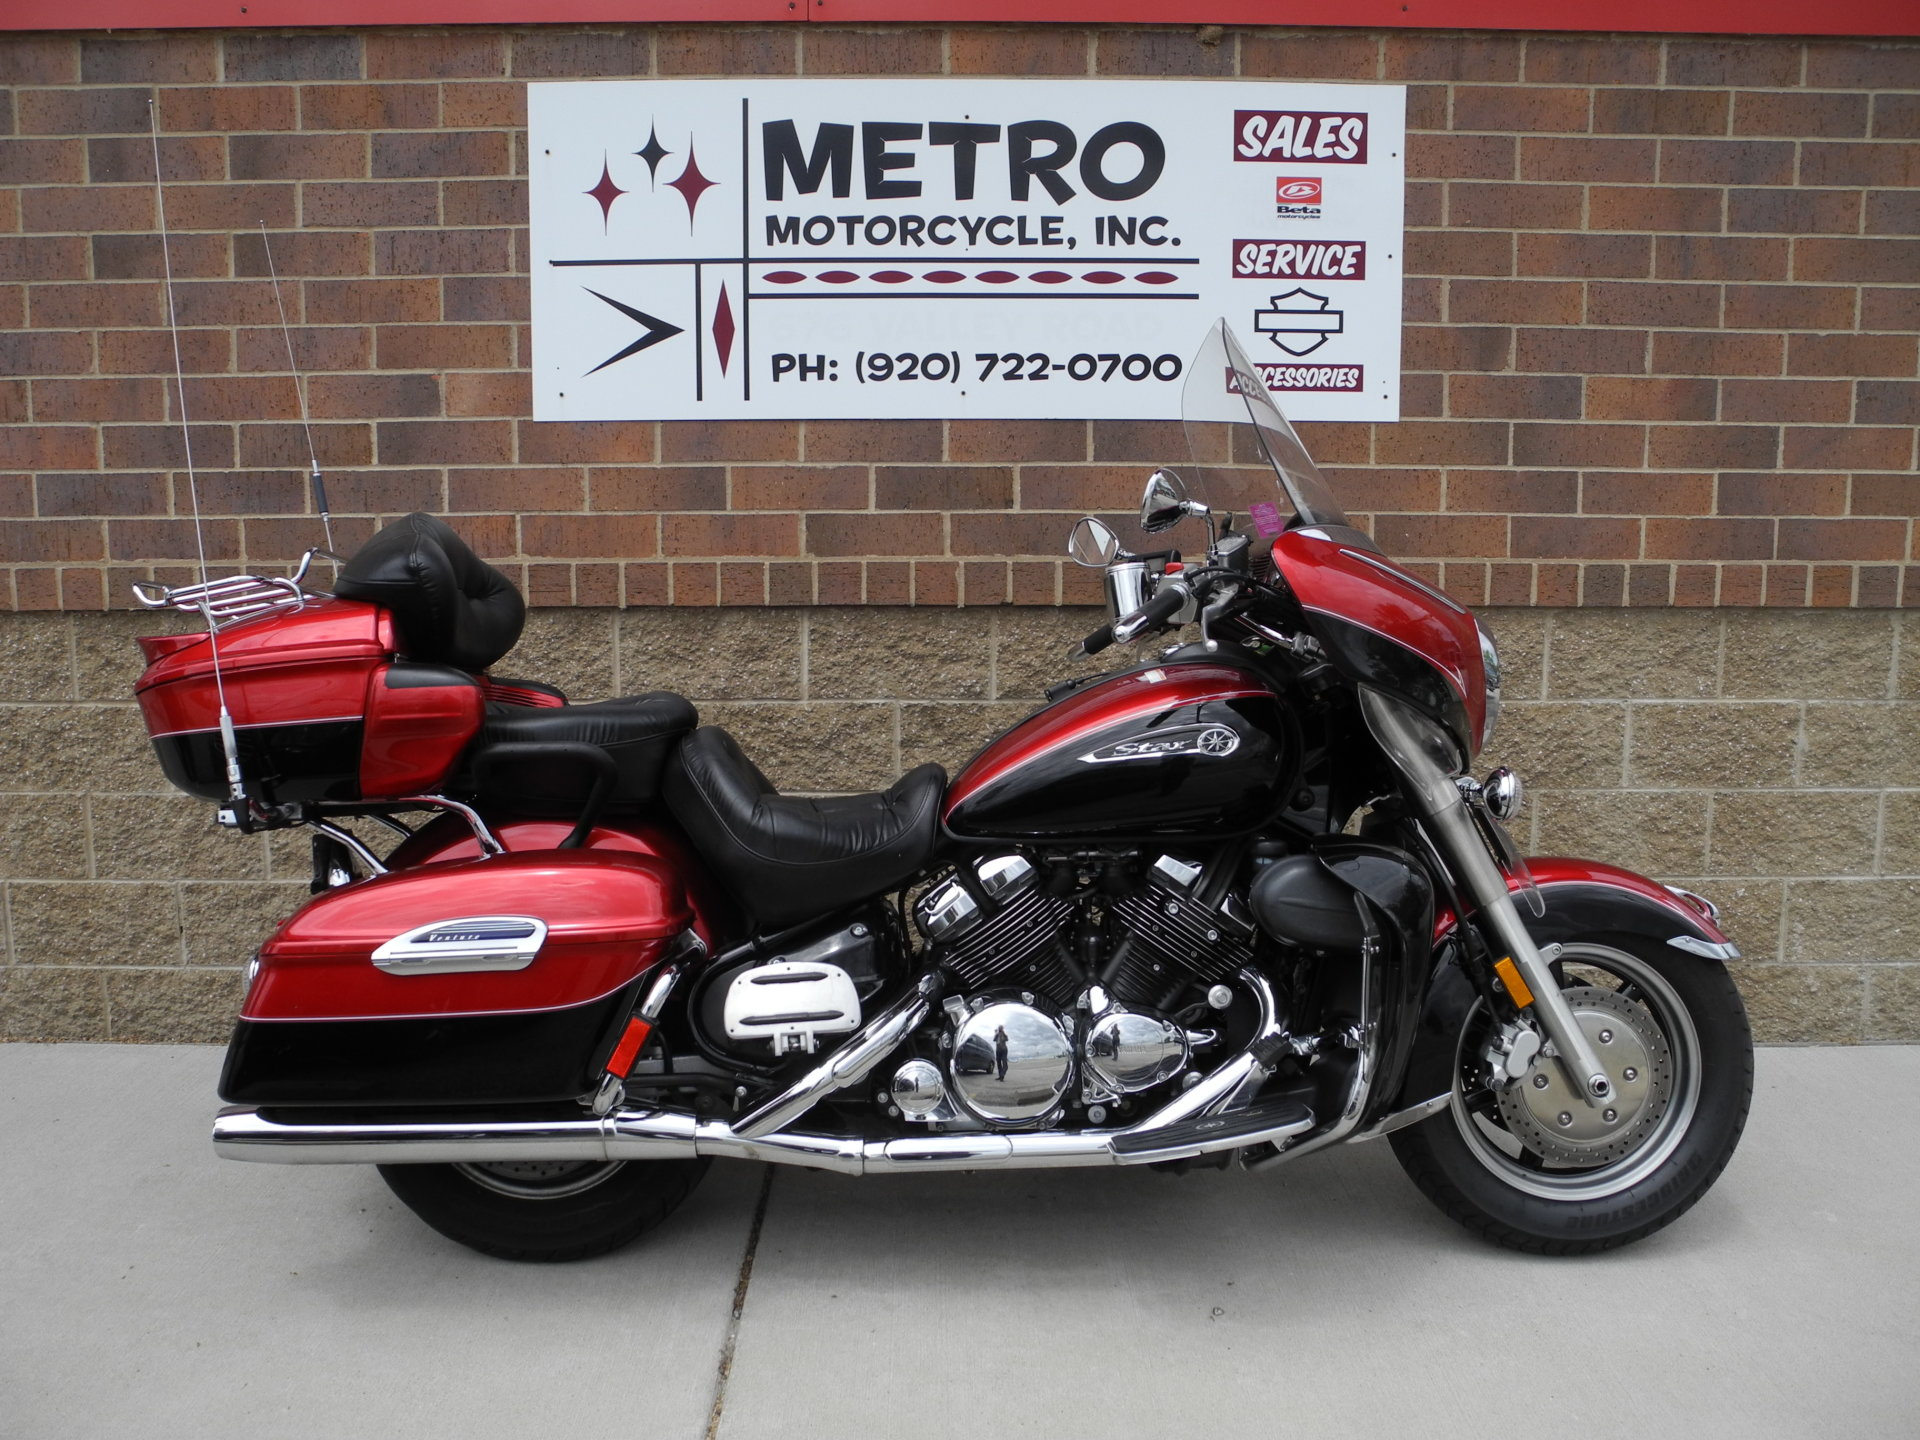 2009 Yamaha XVZ 1300 Royal Star Venture